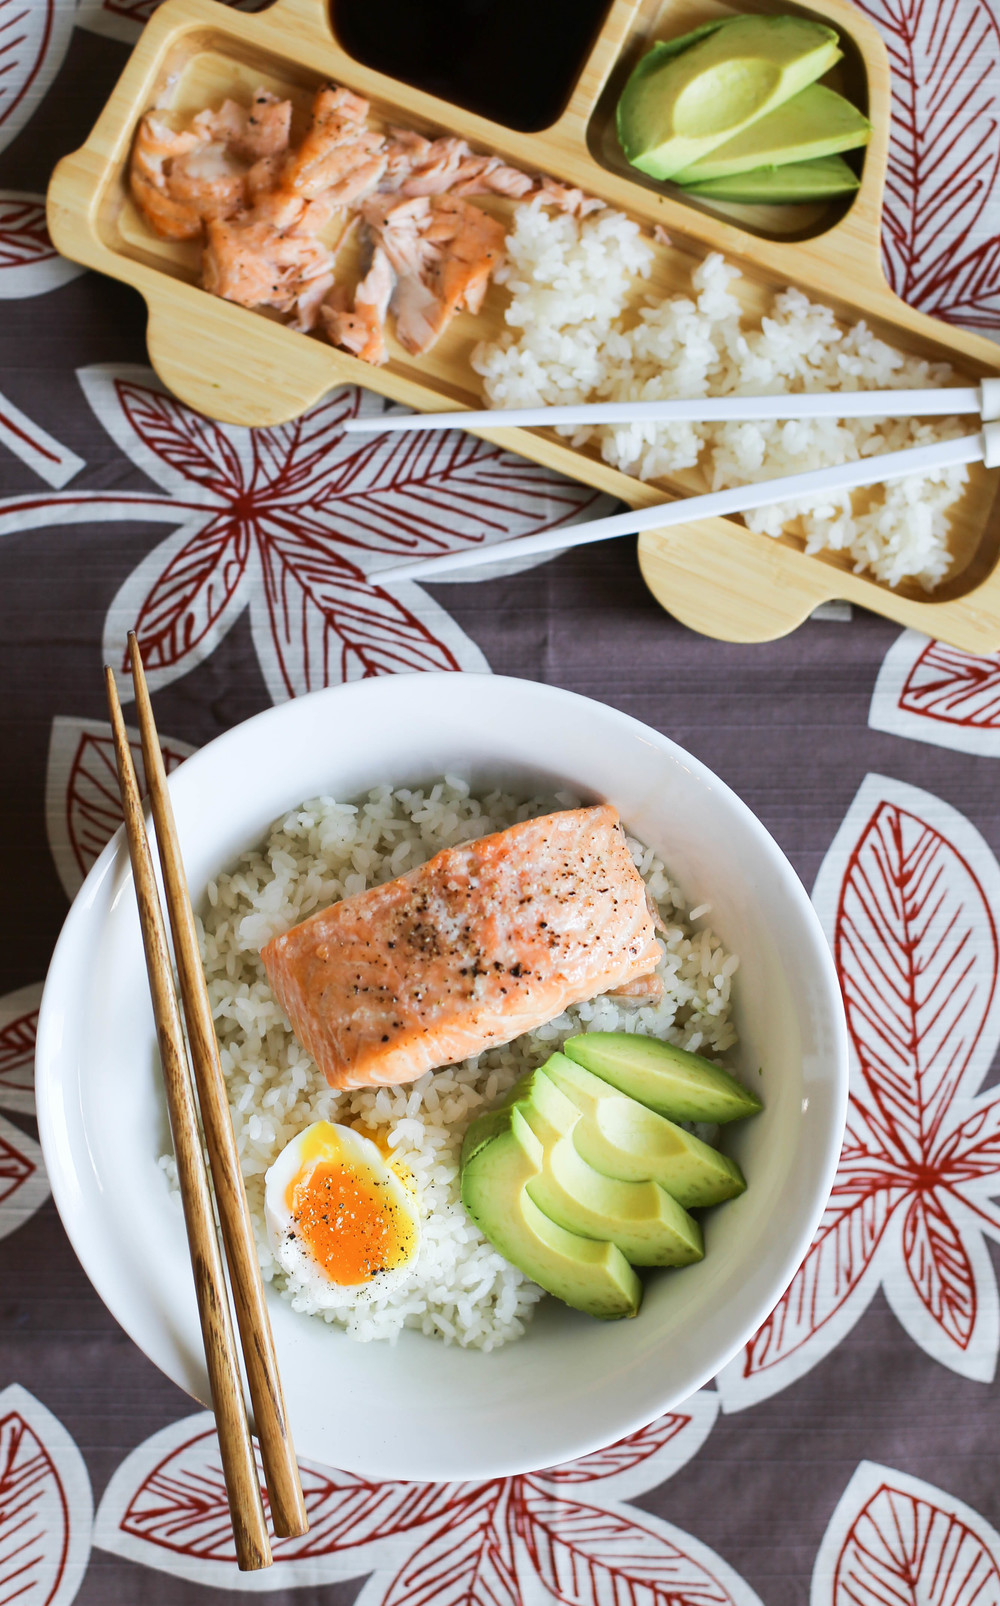 15 minute salmon avocado rice bowls video set the table dont forget to subscribe to our youtube channel so you dont miss upcoming videos know someone who would love this meal share this video with them ccuart Image collections